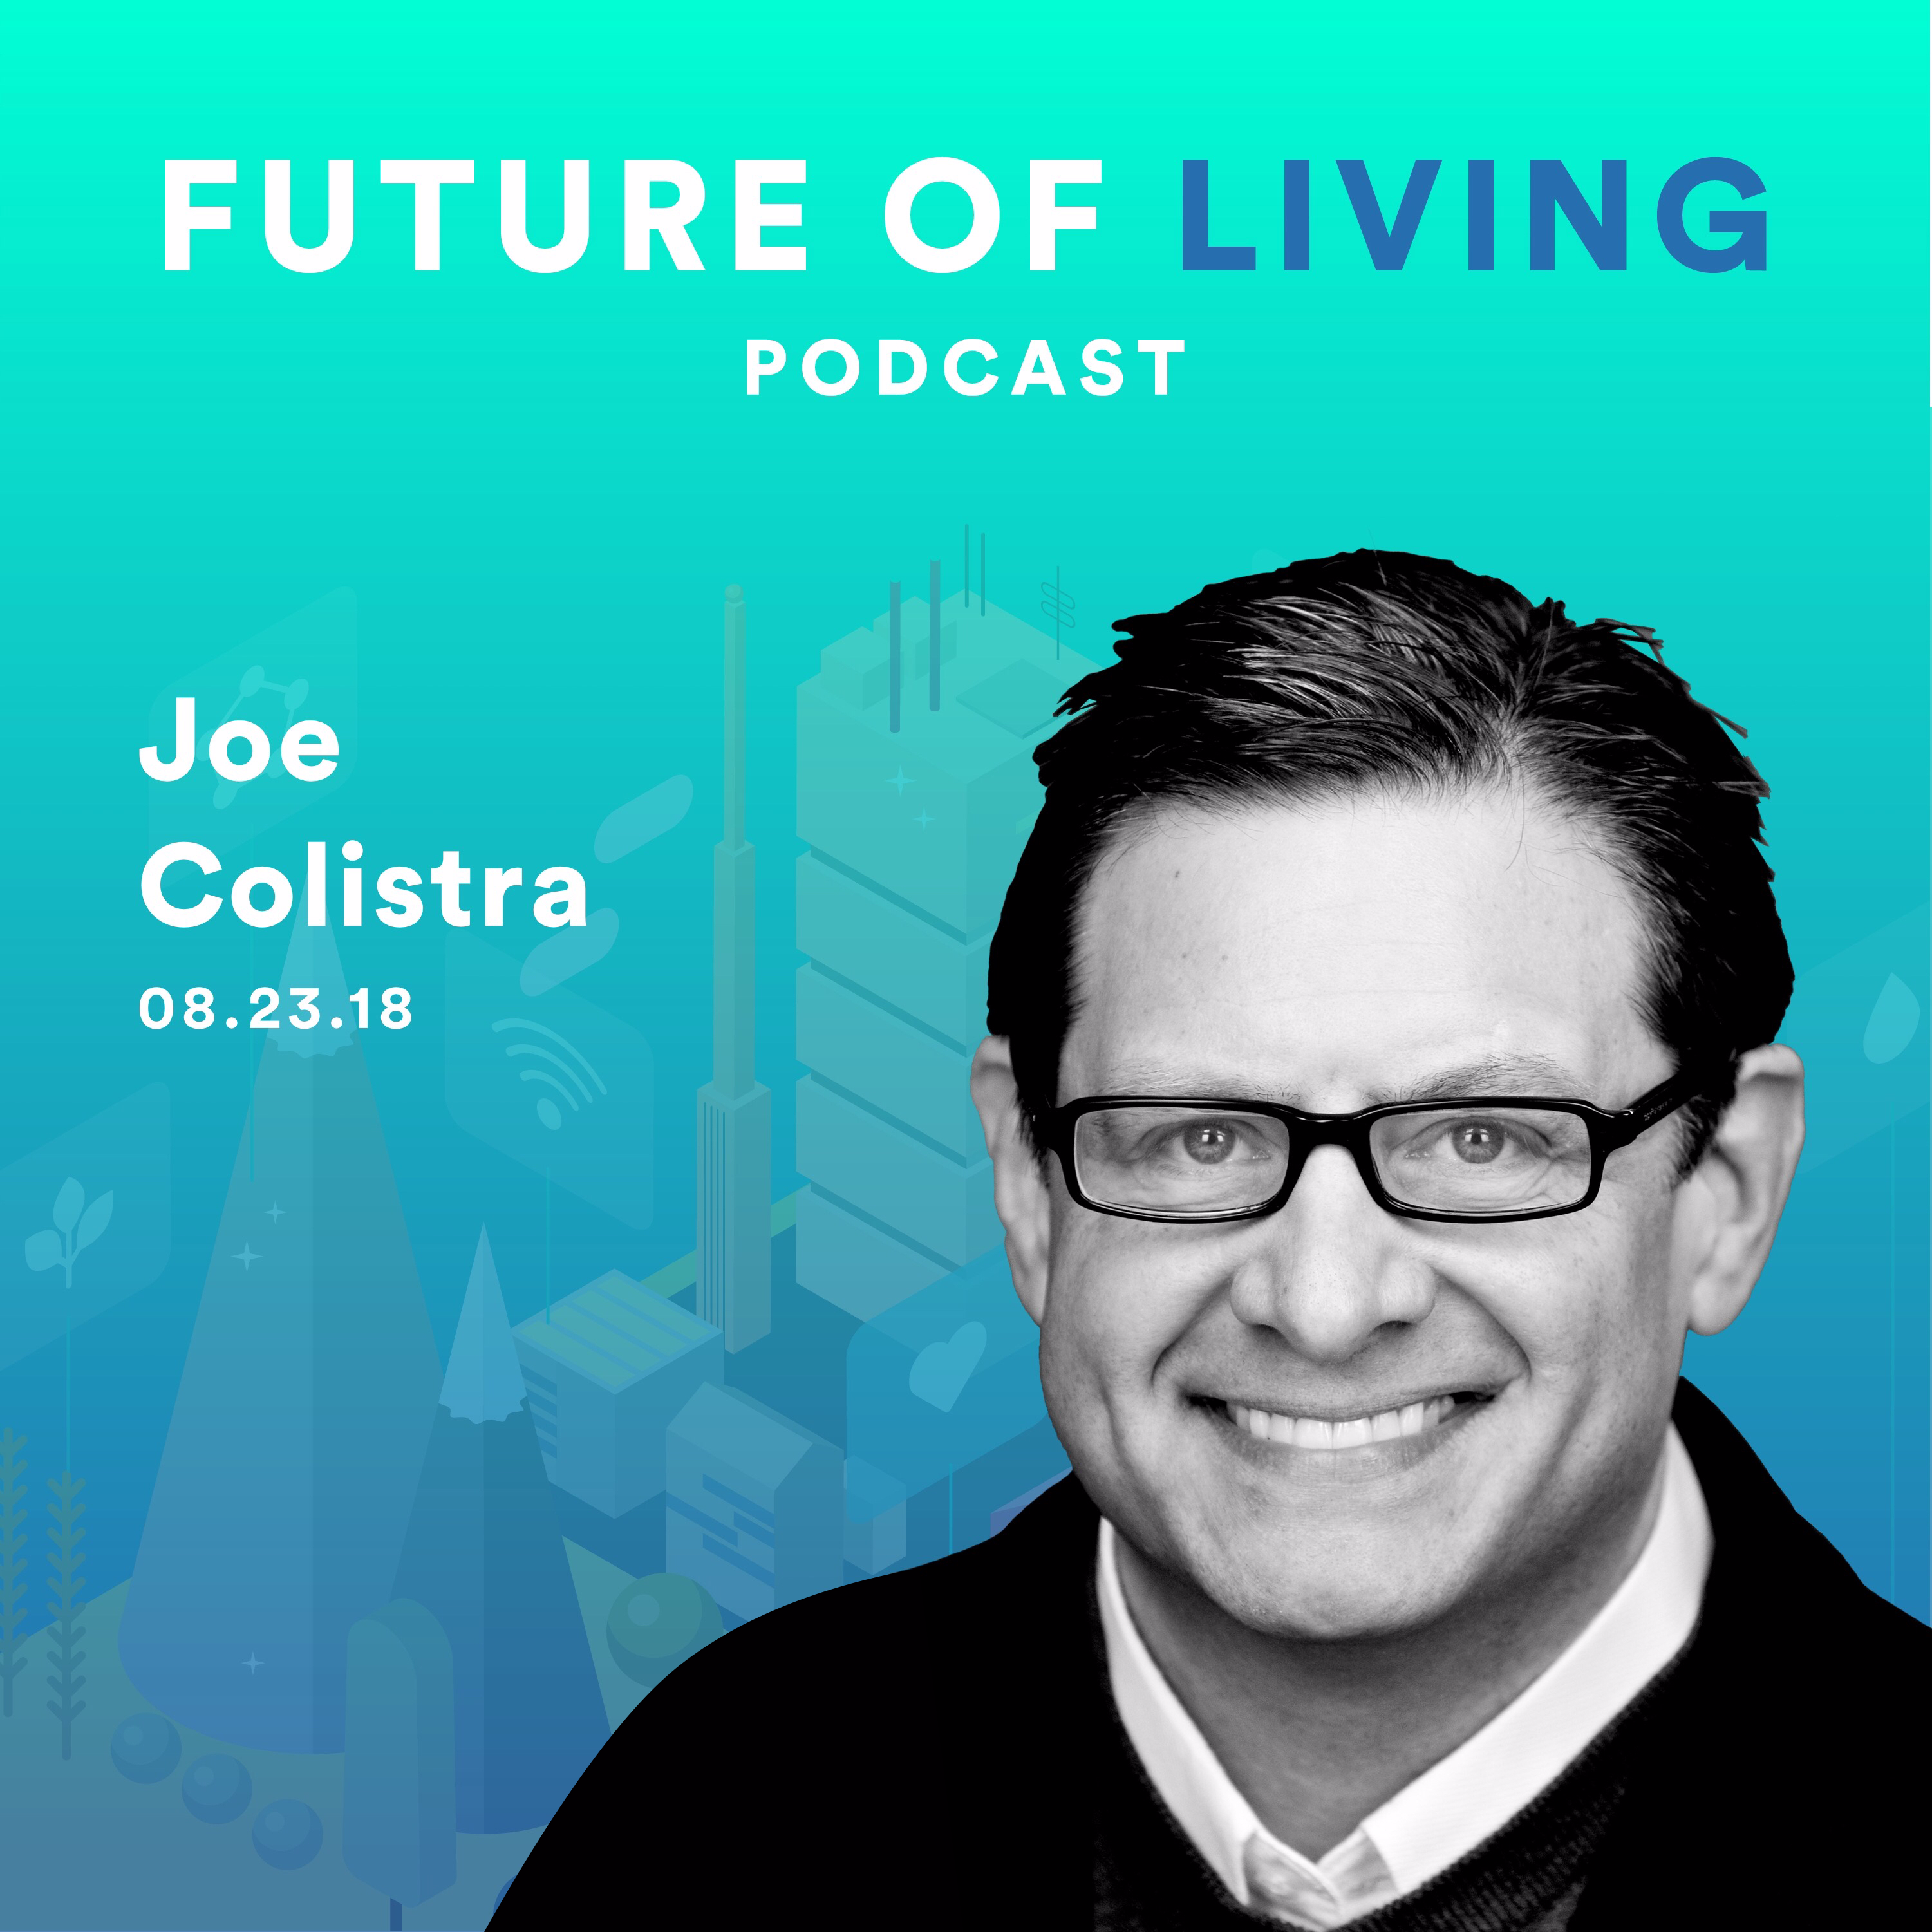 Joe Colistra on Community, Senior Living, and Sustainability